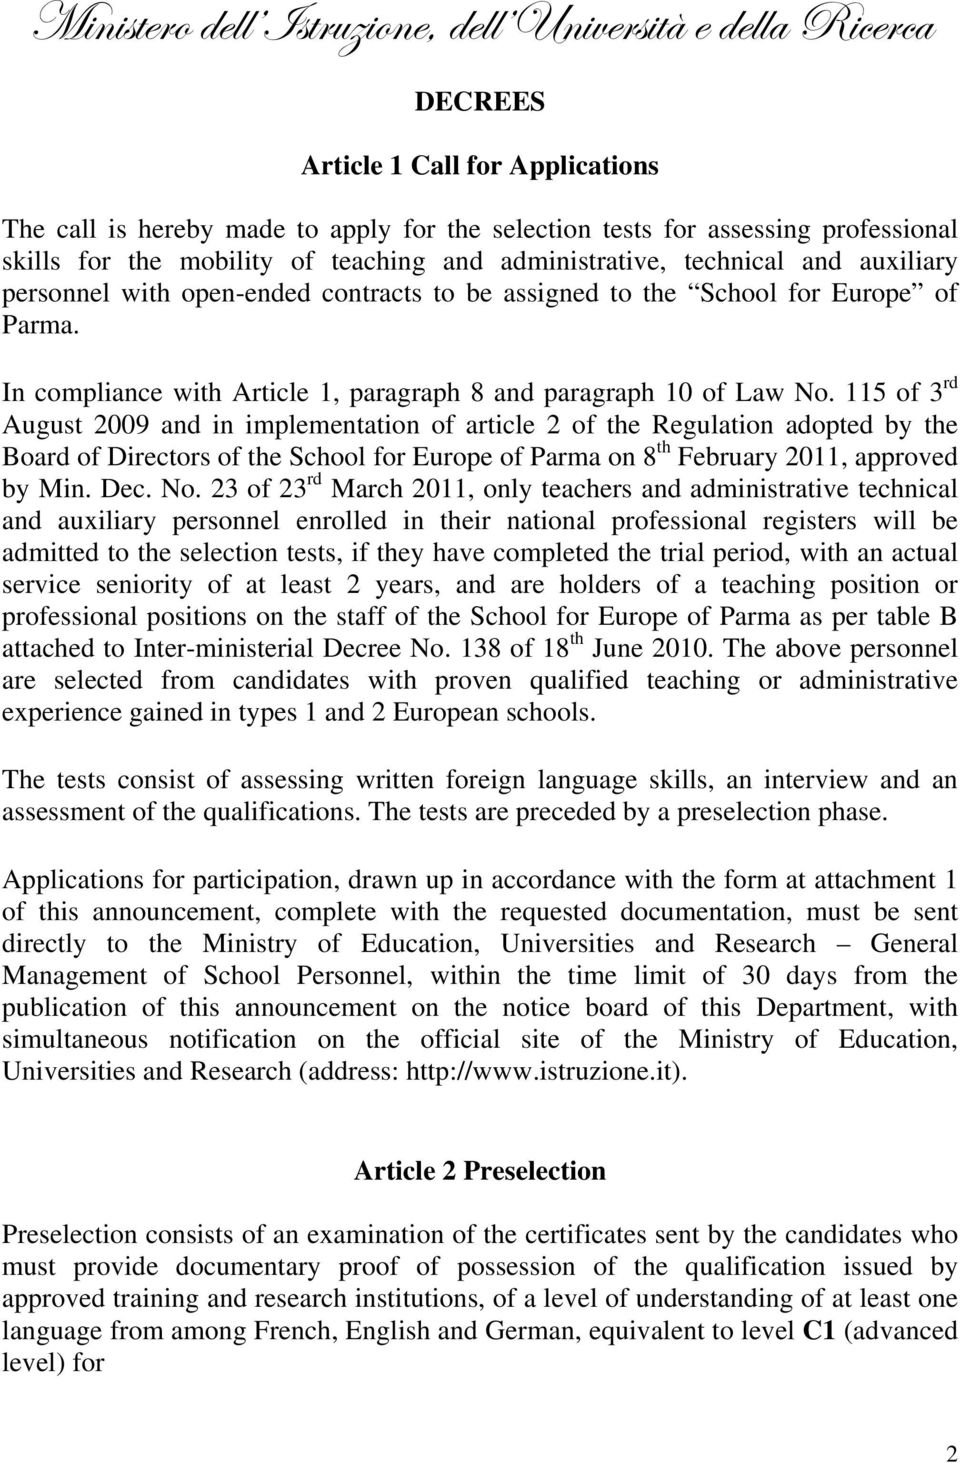 115 of 3 rd August 2009 and in implementation of article 2 of the Regulation adopted by the Board of Directors of the School for Europe of Parma on 8 th February 2011, approved by Min. Dec. No.